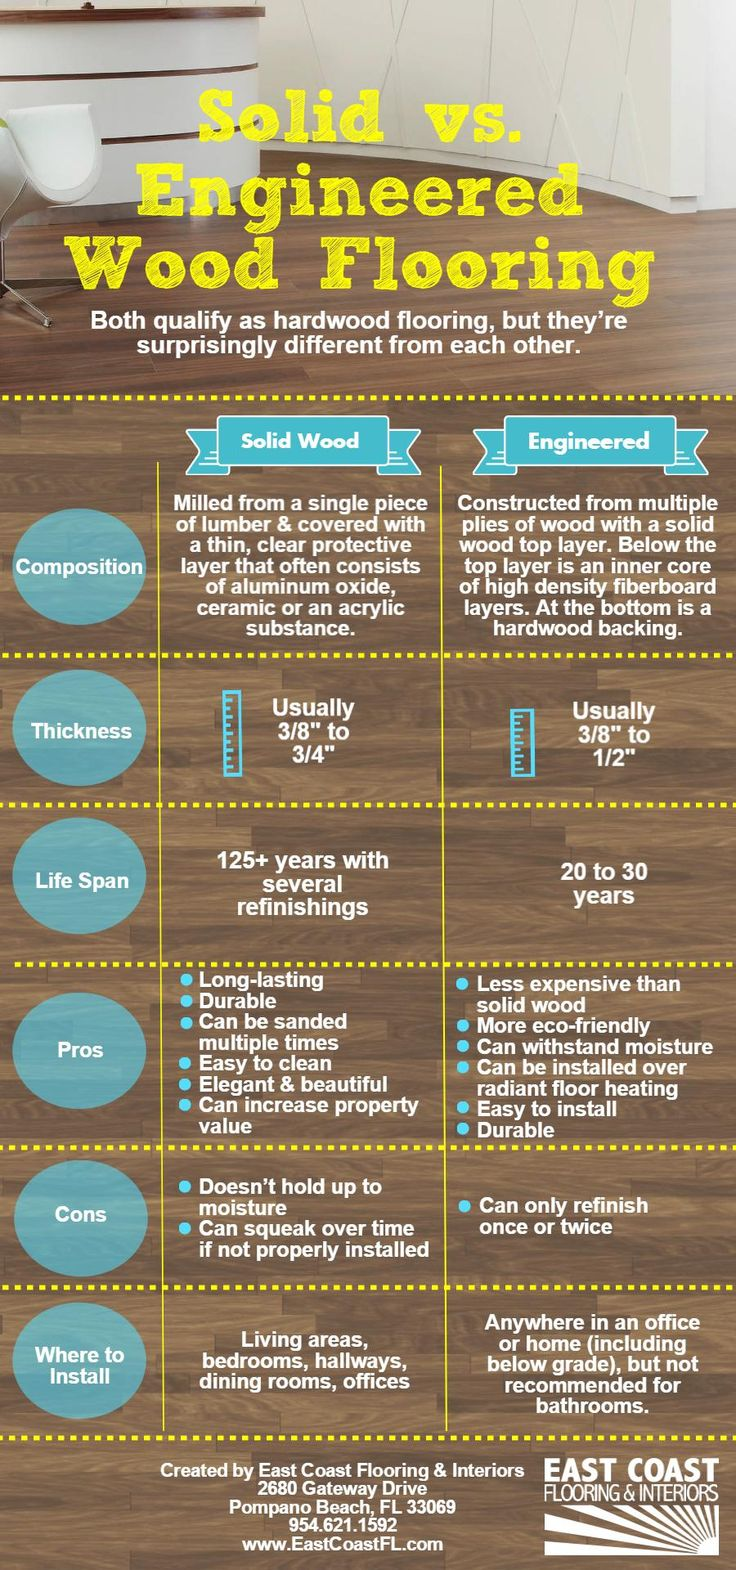 Solid Vs Engineered Wood Flooring Infographic Our